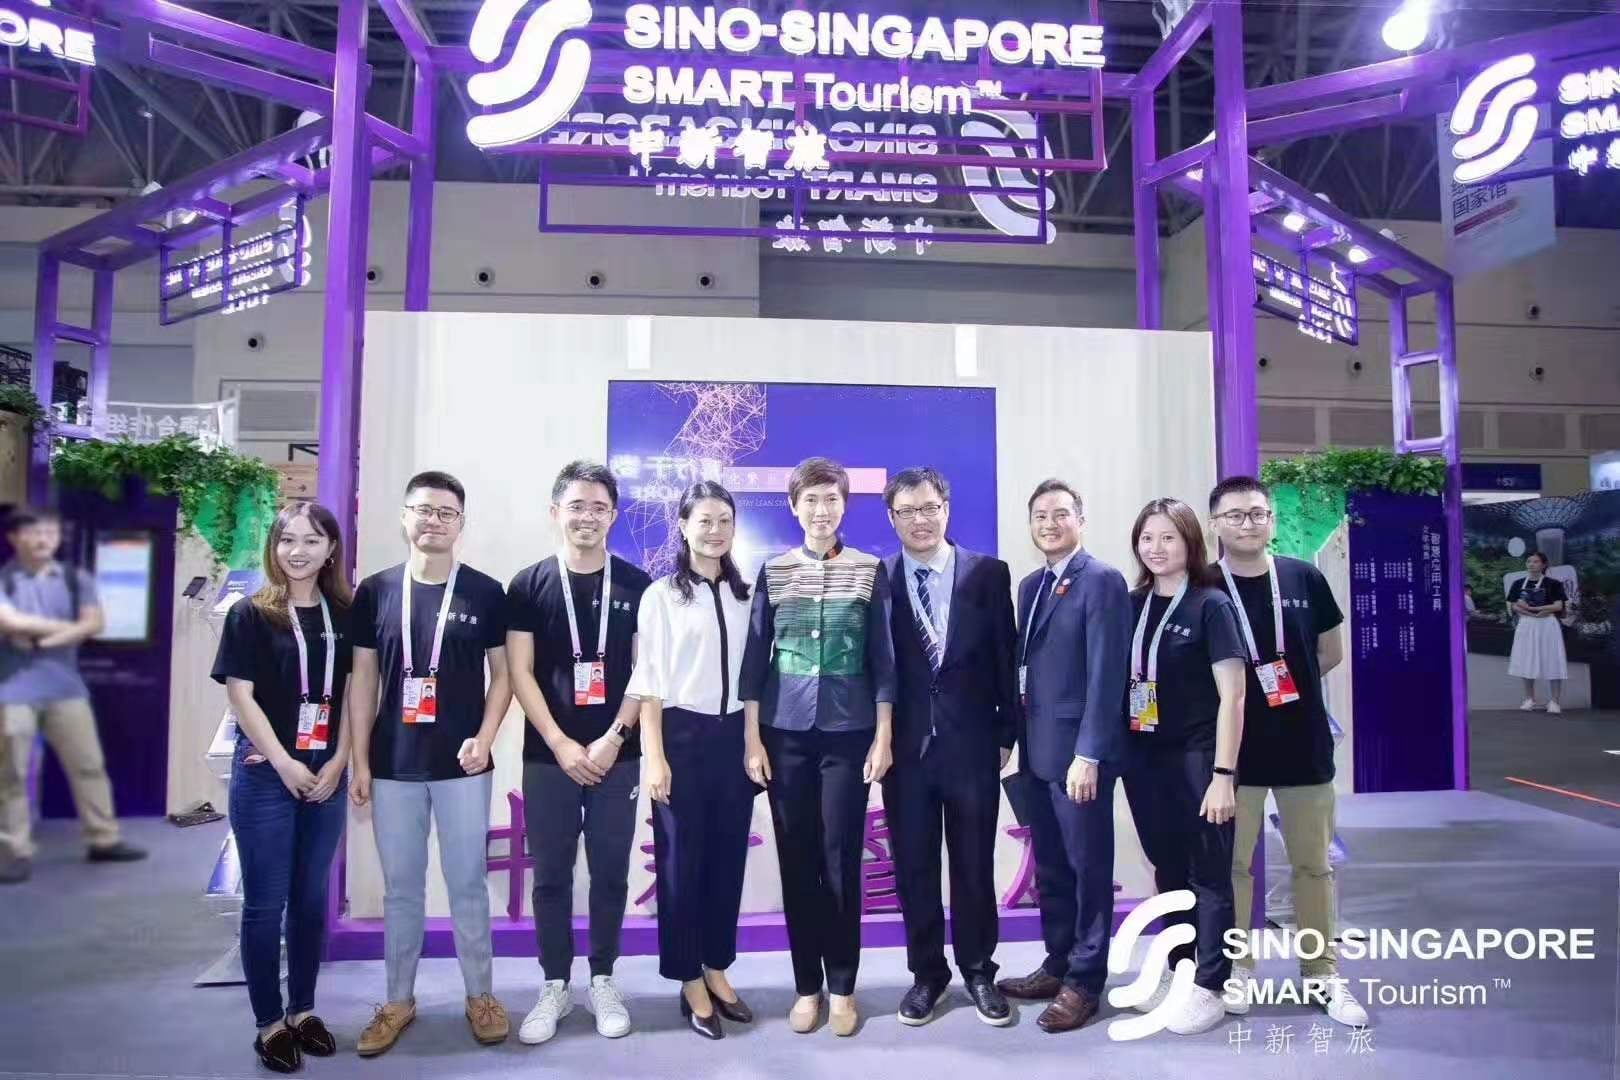 Minister Josephine Teo and IMDA CEO, Mr. Tan Kiat How visiting the booth in Singapore Pavilion at the second Smart China Expo.